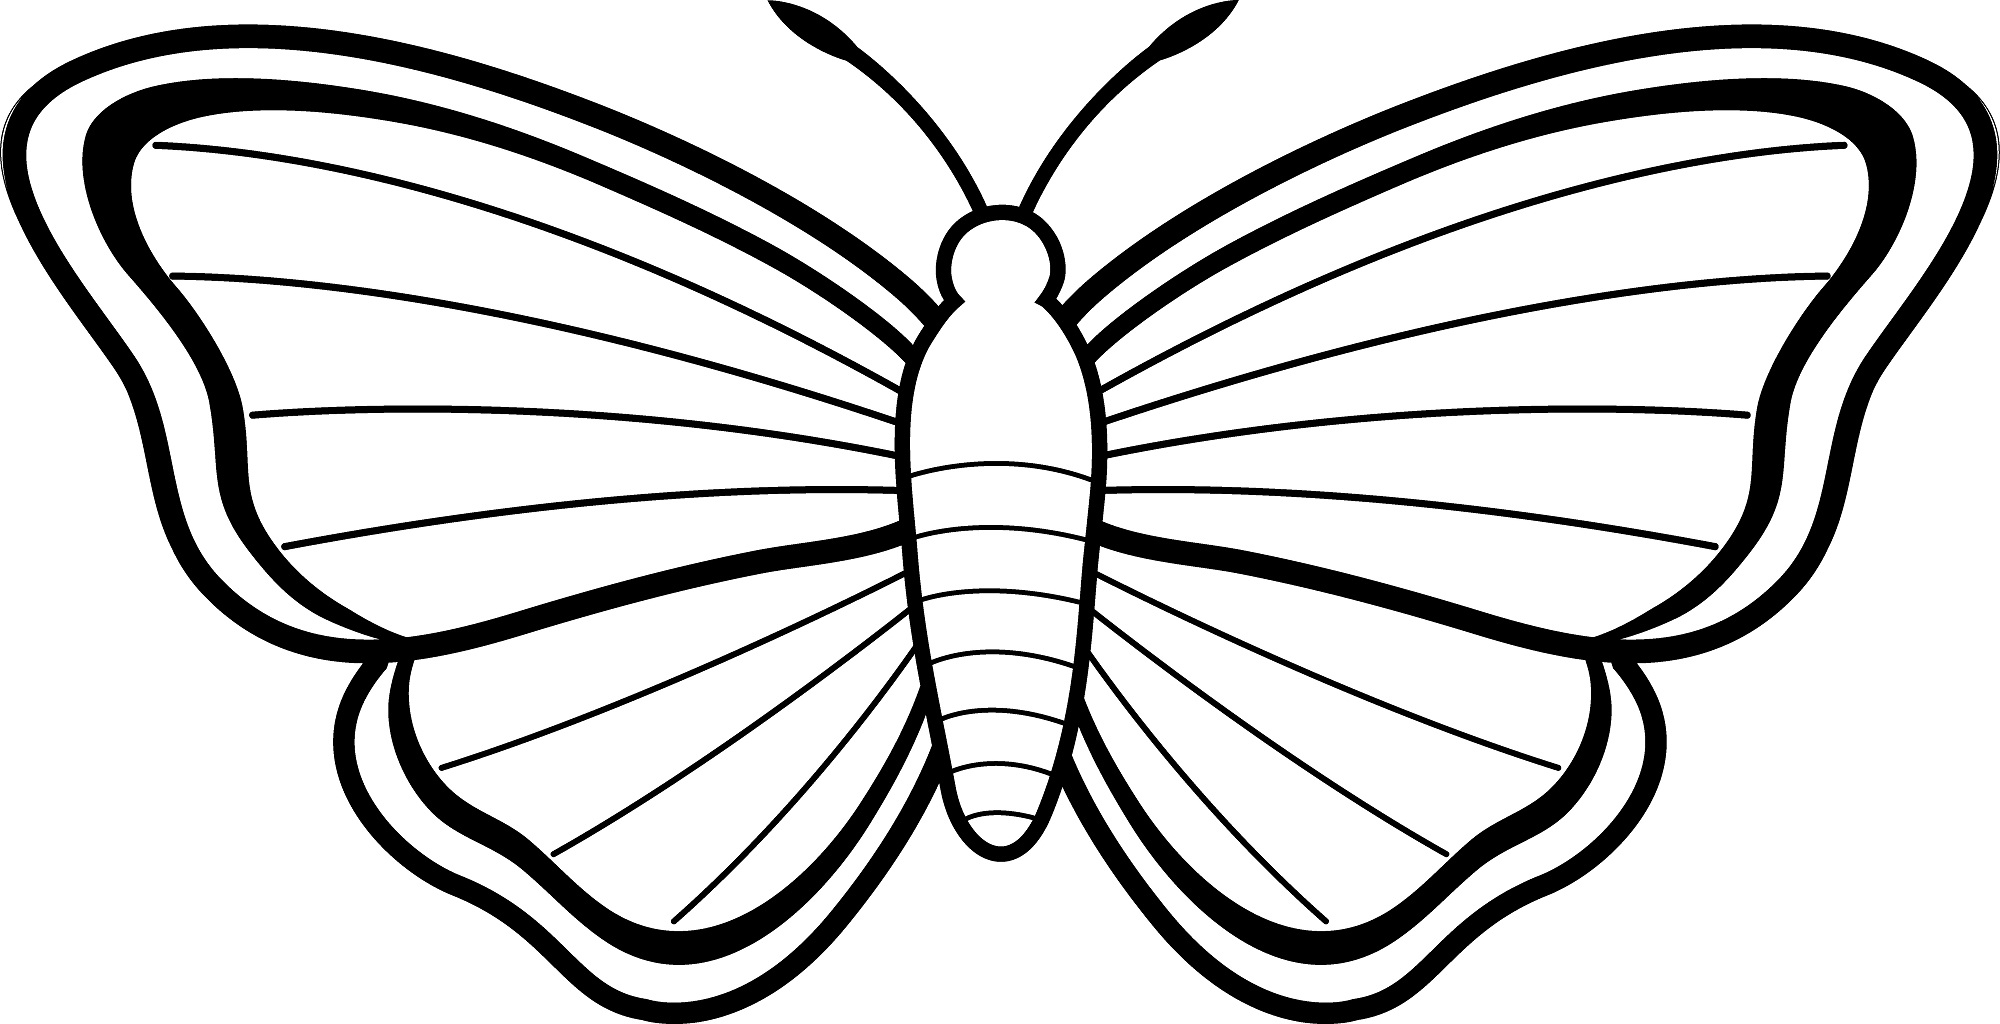 butterflies coloring page free printable butterfly coloring pages for kids page butterflies coloring 1 1